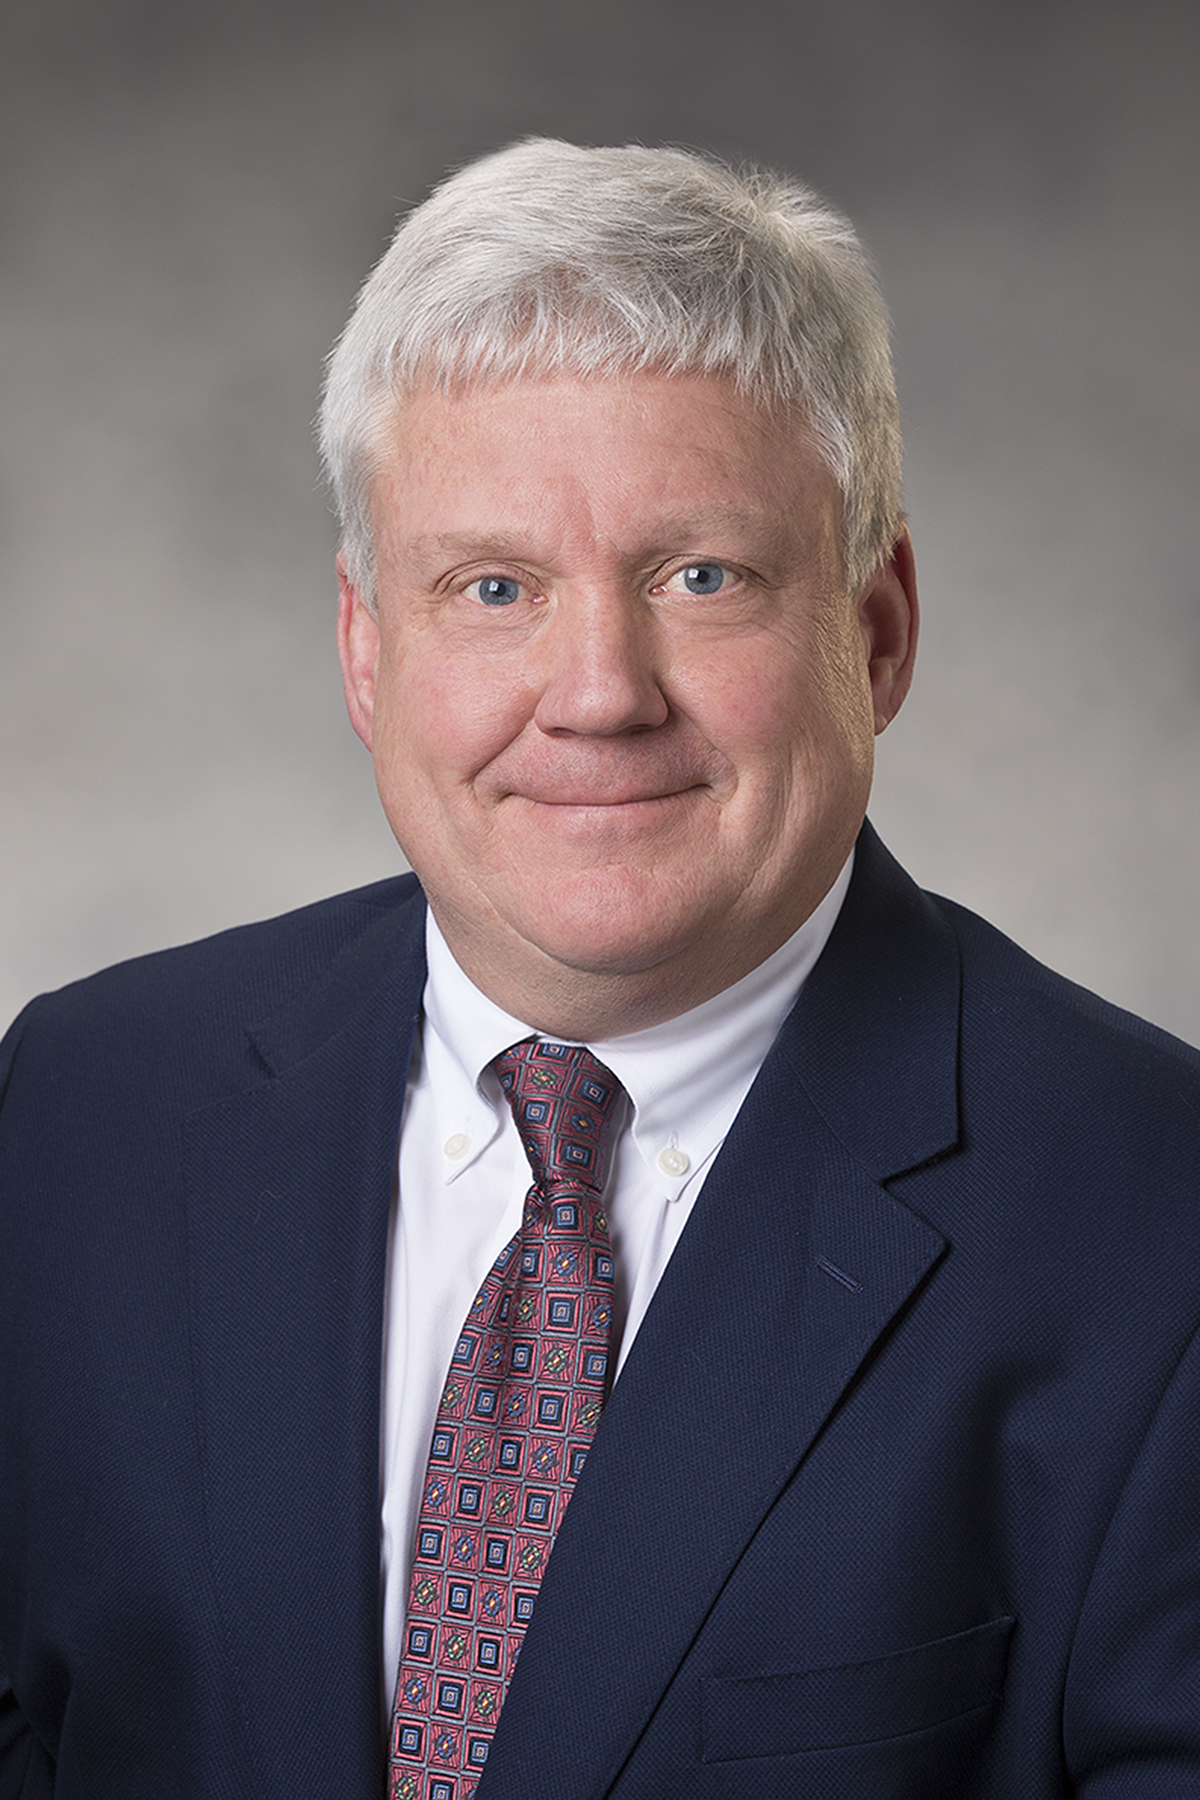 Dr. William Lundberg, St. Luke's Orthopedics & Sports Medicine